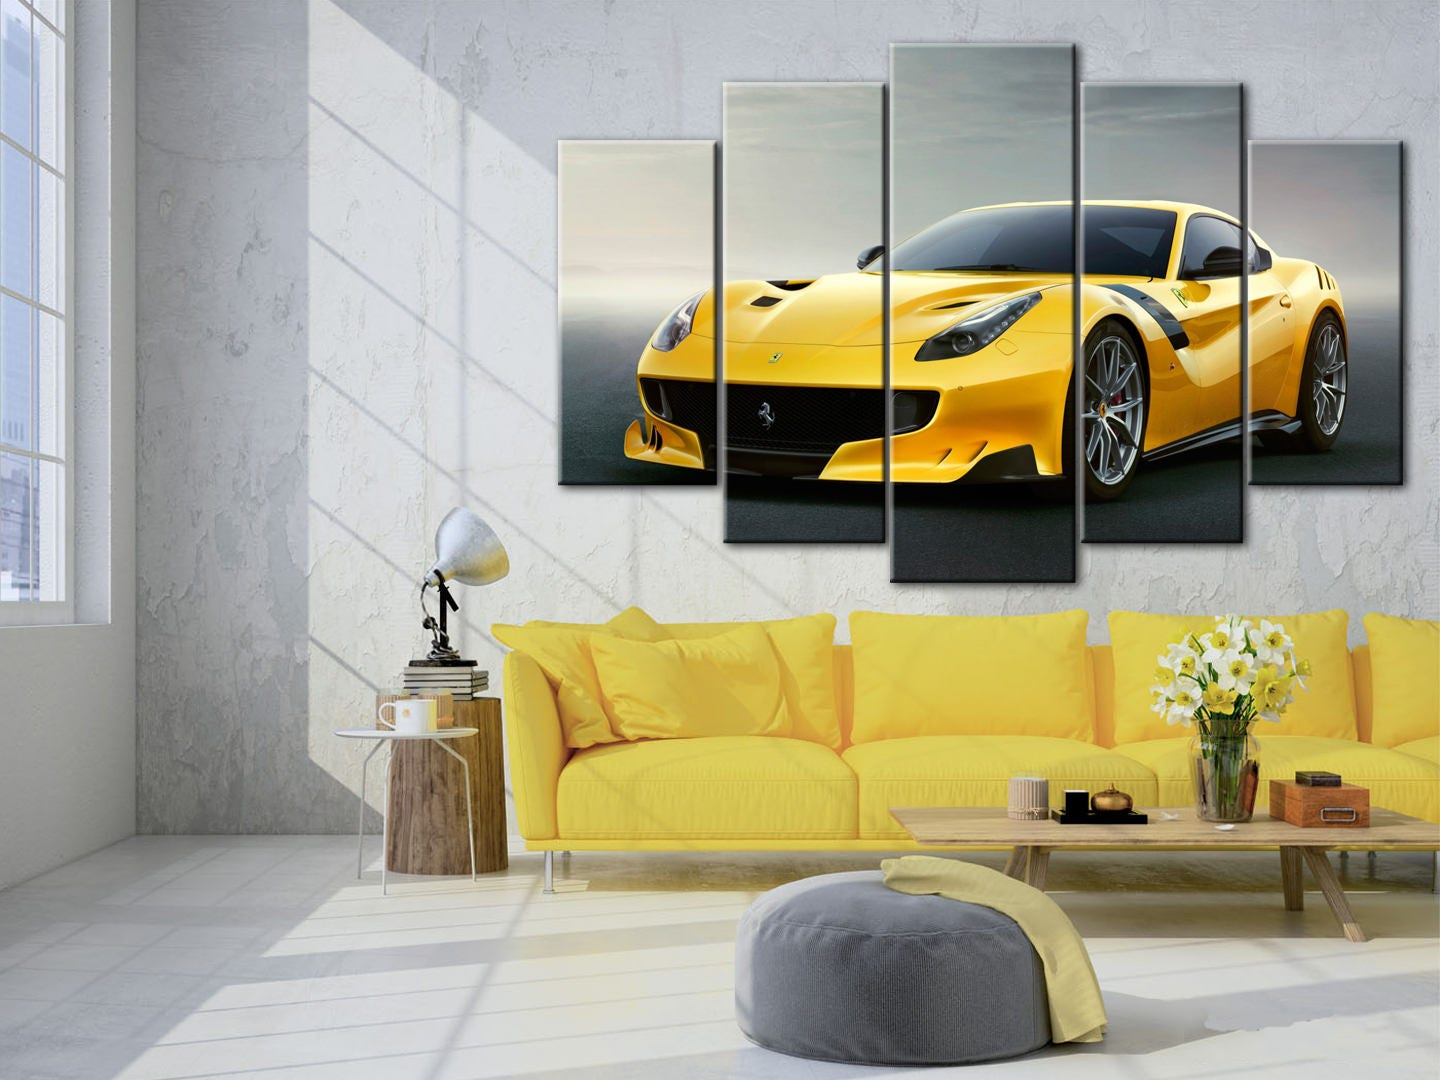 Ferrari F12 Berlinetta Supercar wall art Sport car poster